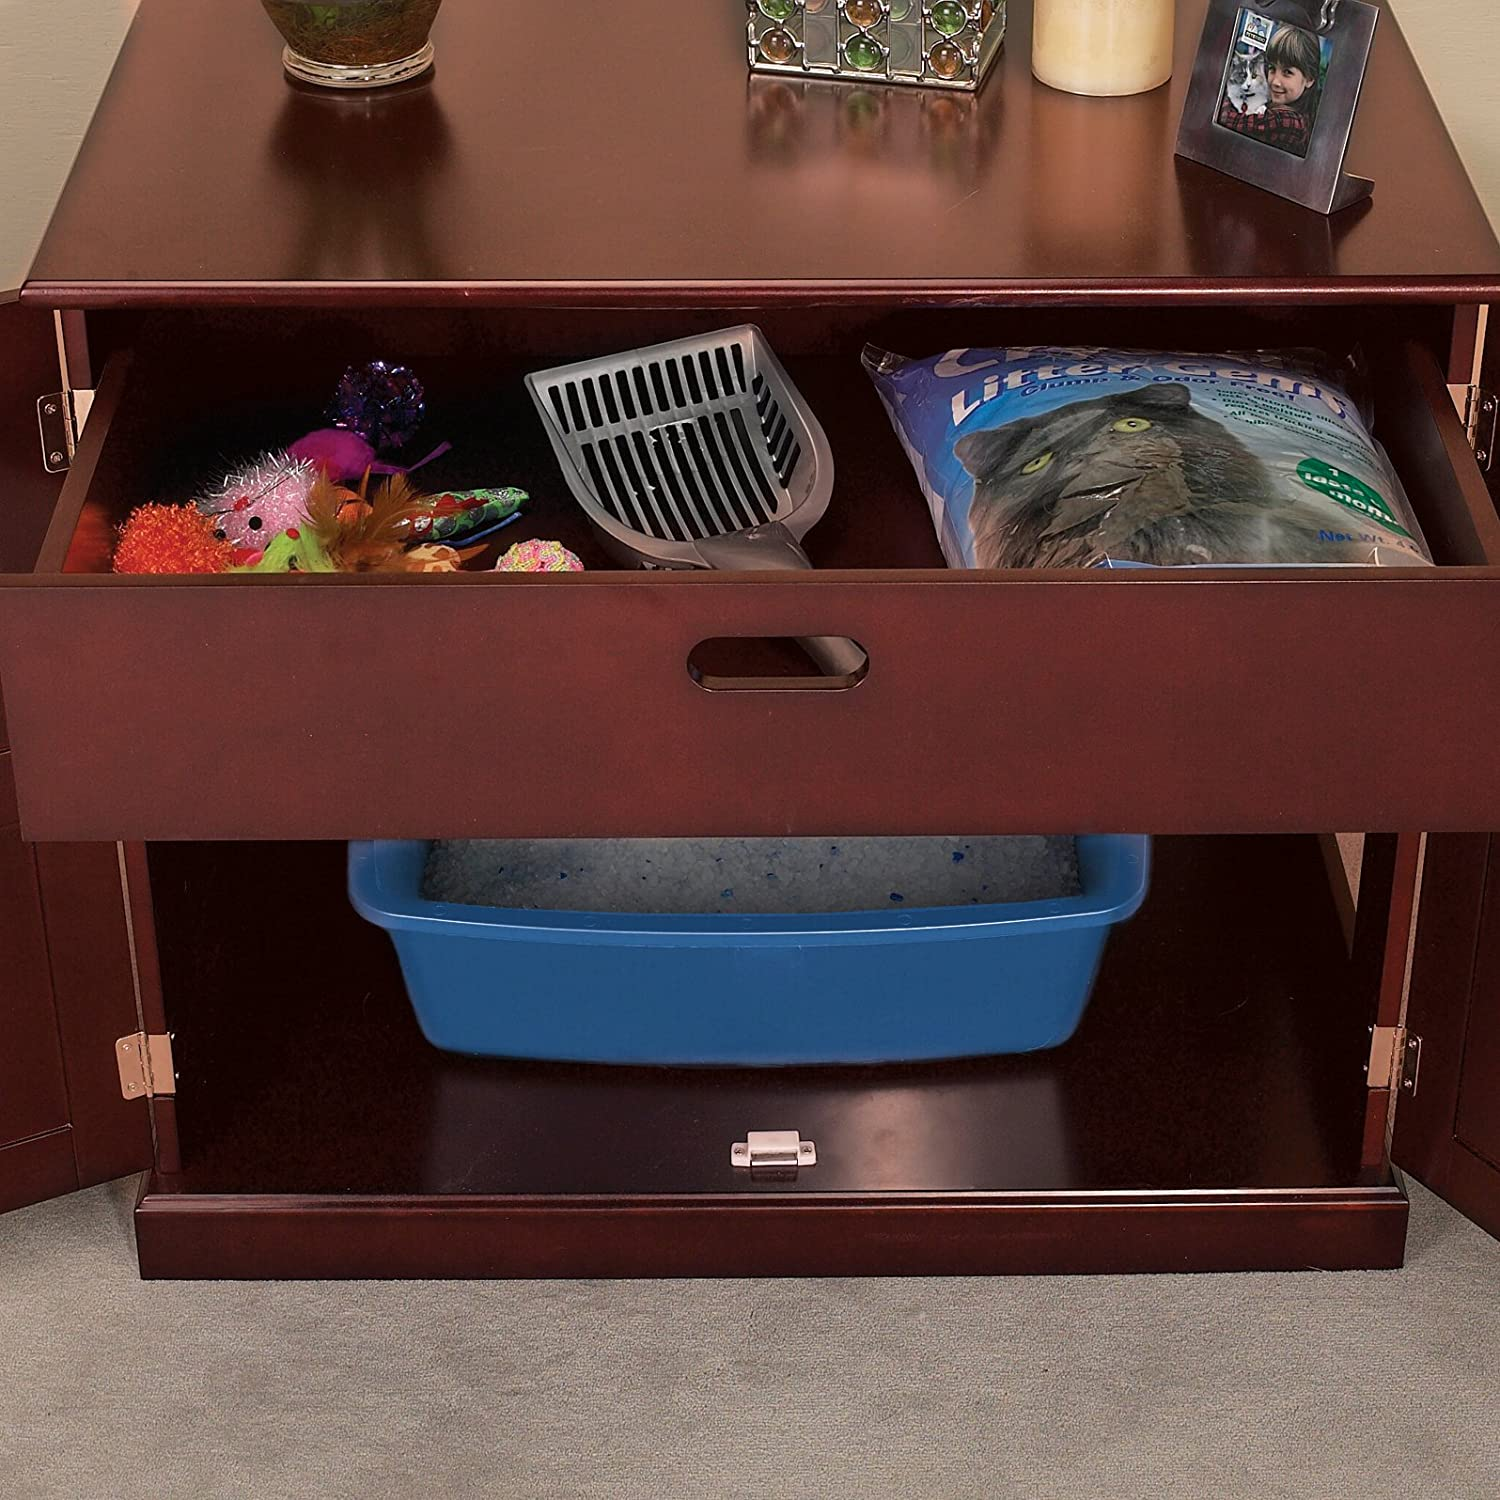 meow town mdf litter box. Amazon.com : Meow Town Concord Cat Litter Cabinet, Mahogany-Finished Concealer Pet Supplies Mdf Box M